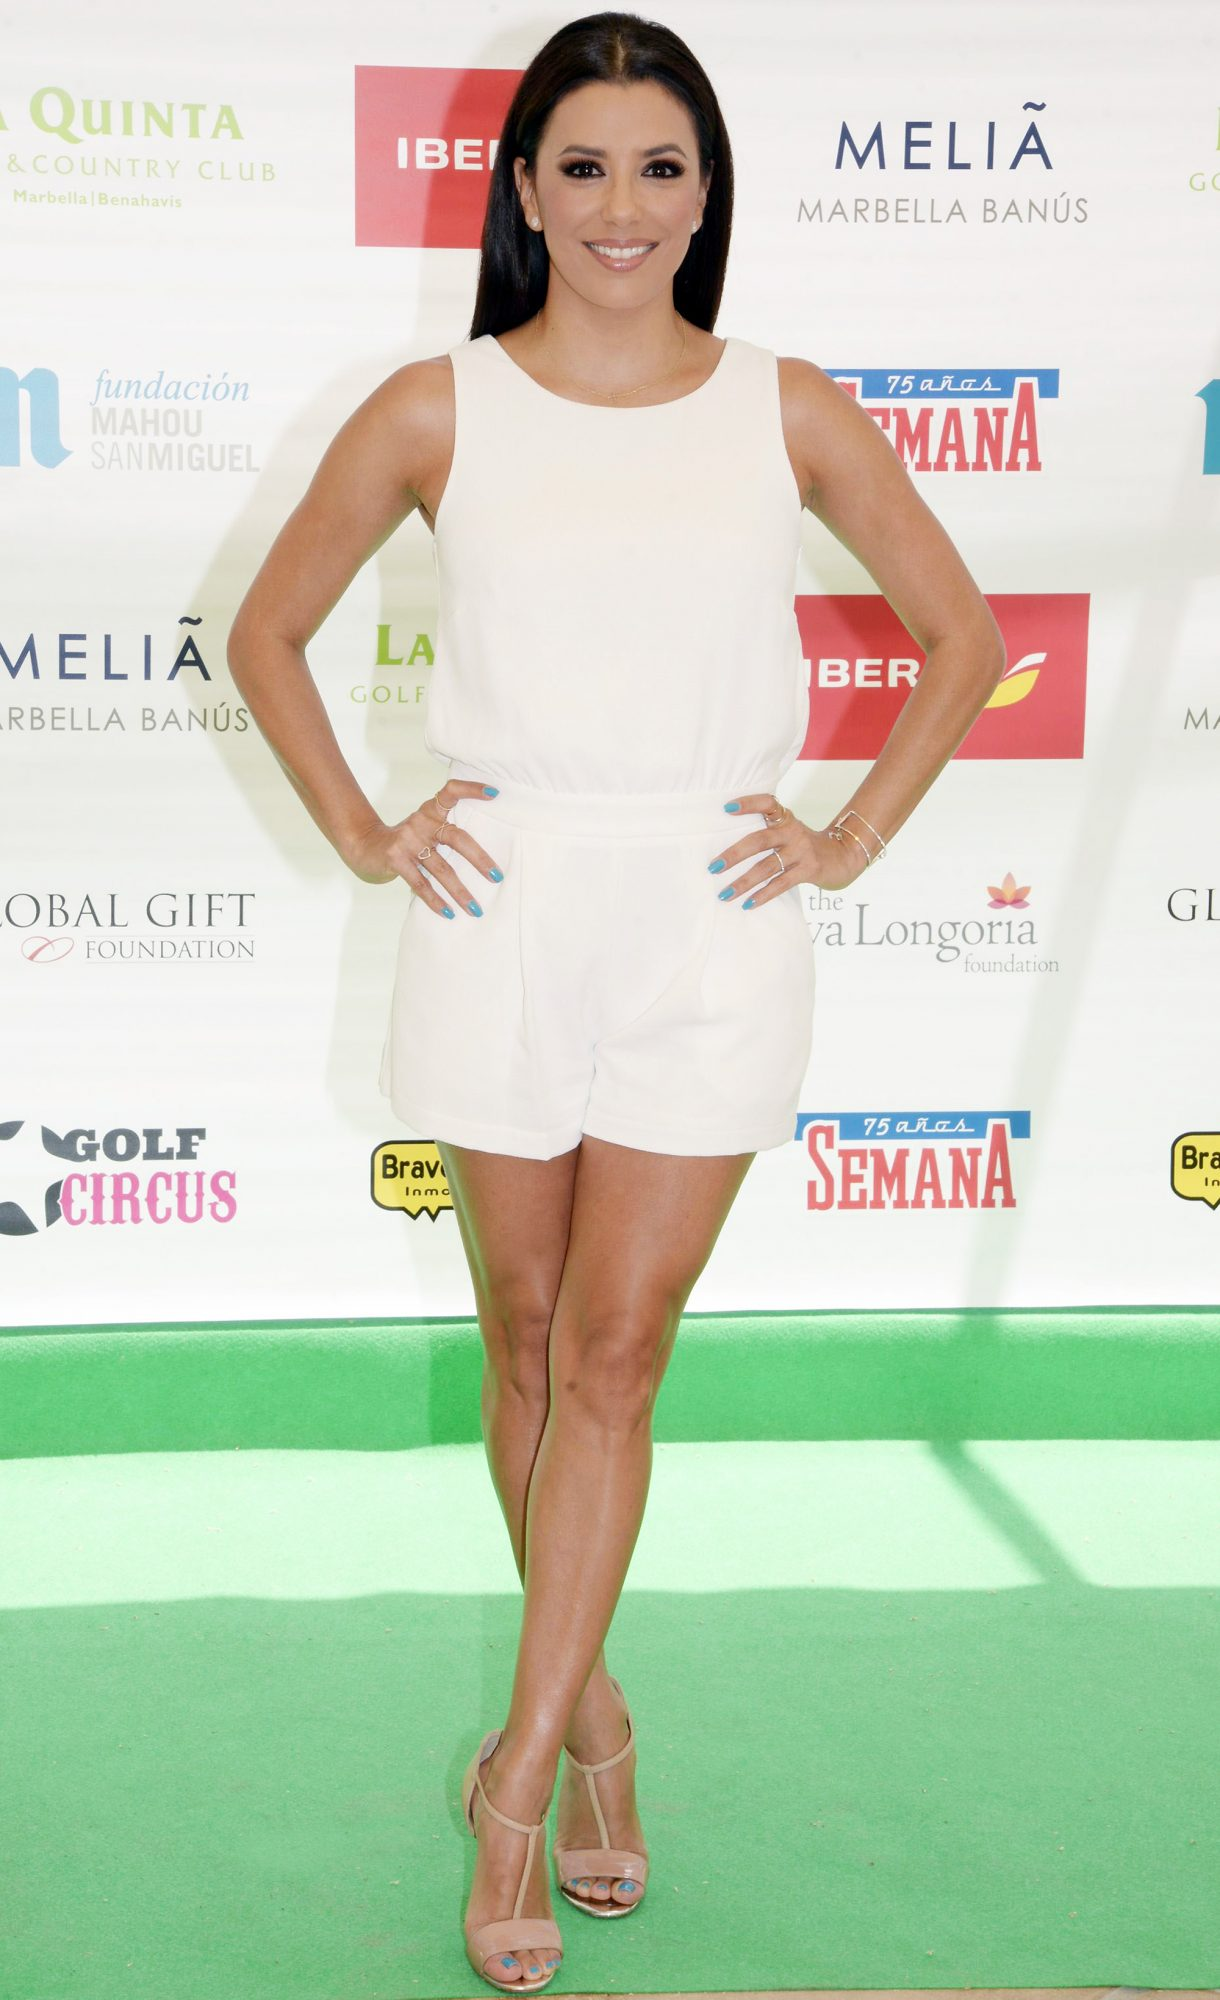 Global Gift Gala Marbella 2015 - III Celebrity Golf Tournament